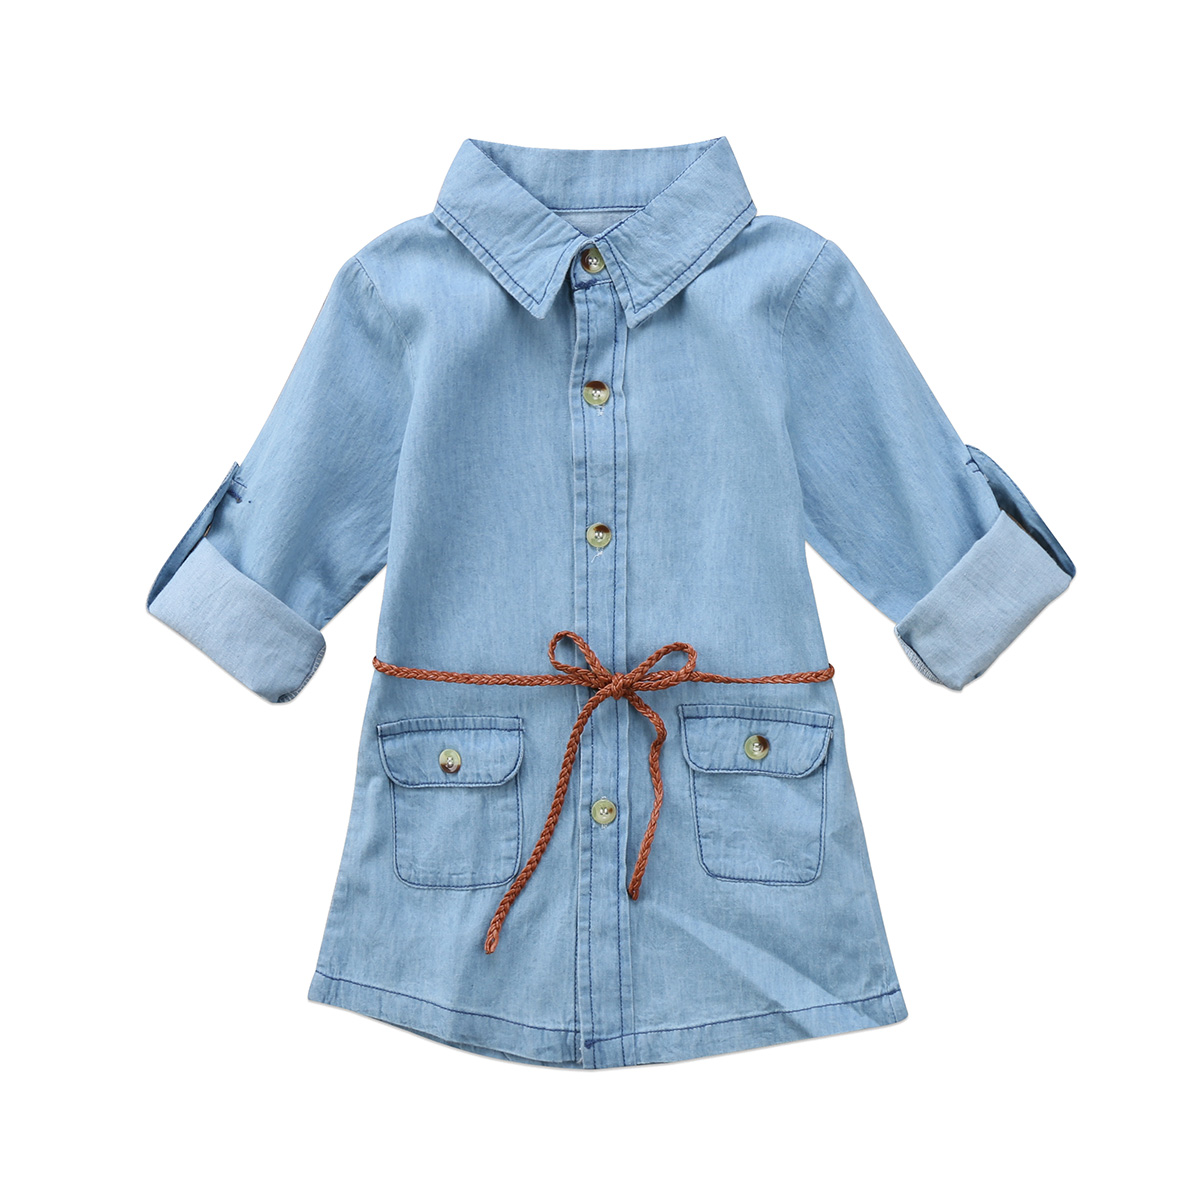 Baby Kids Girl Clothing Denim Short Mini Dresses Jean Long Sleeve